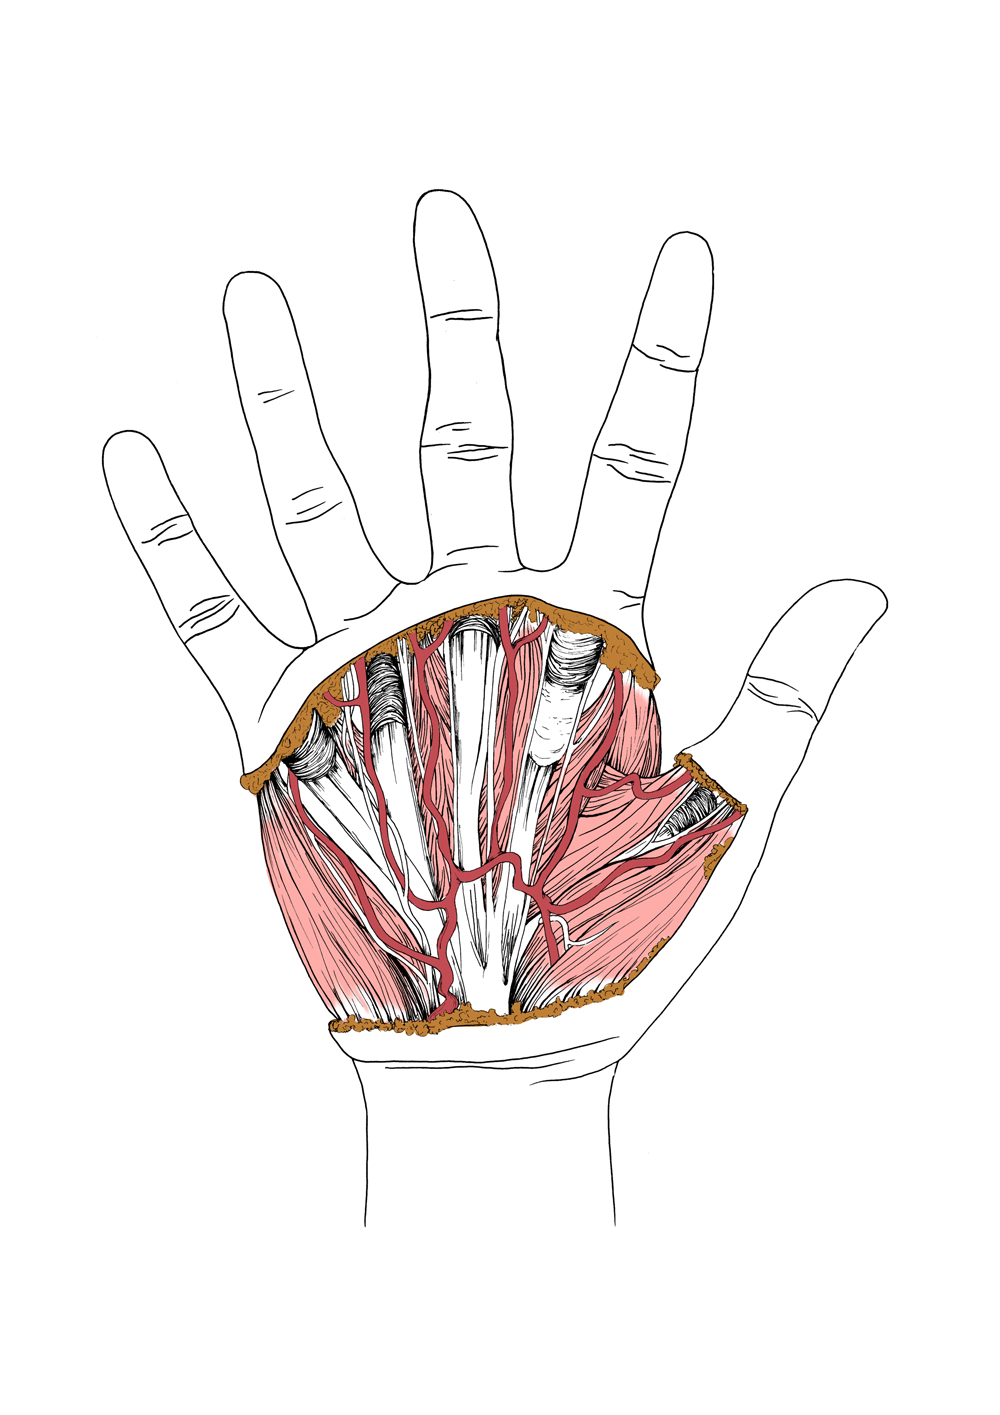 Hand_Dissection_2018.jpg